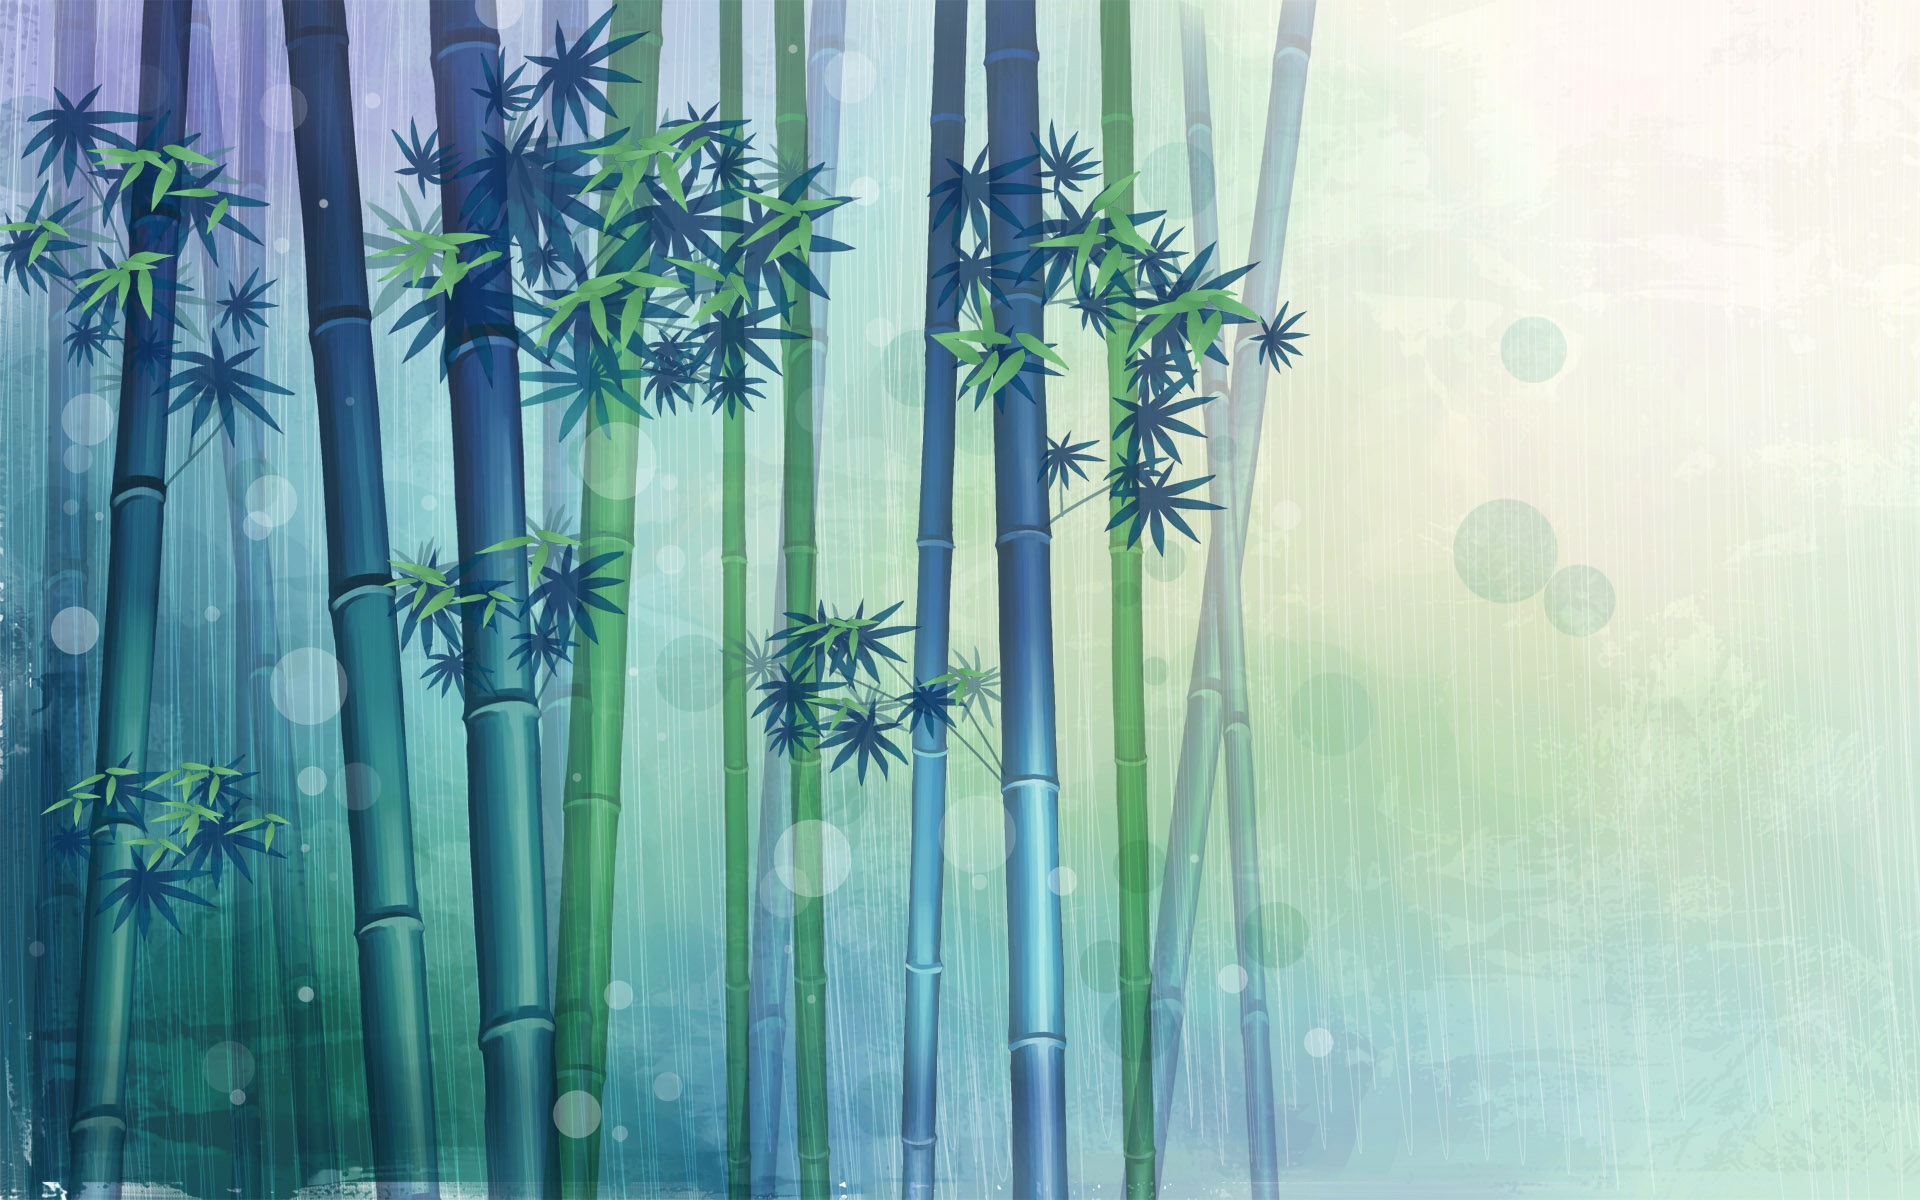 wallpaper bamboo forest, vector design 1920x1200 hd picture, image